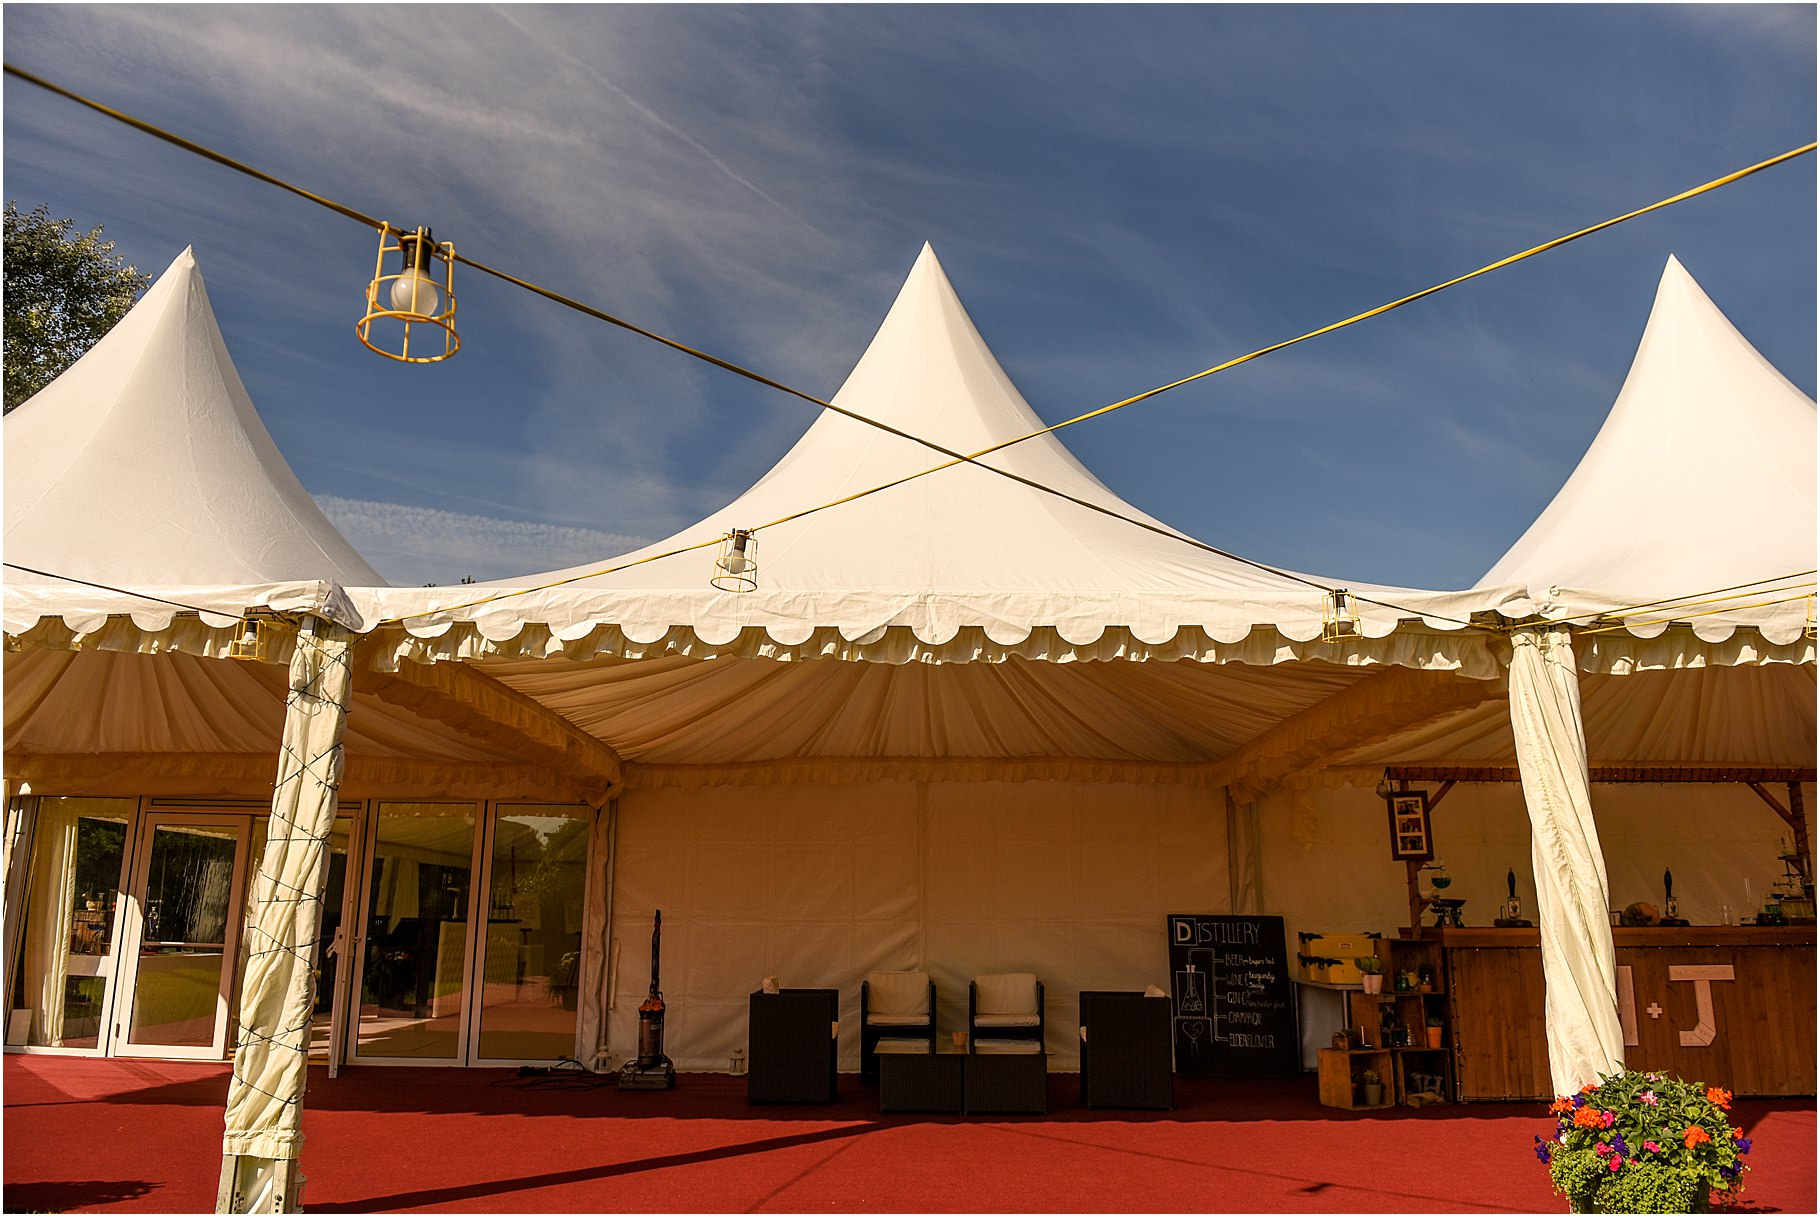 lancashire-marquee-wedding-001.jpg